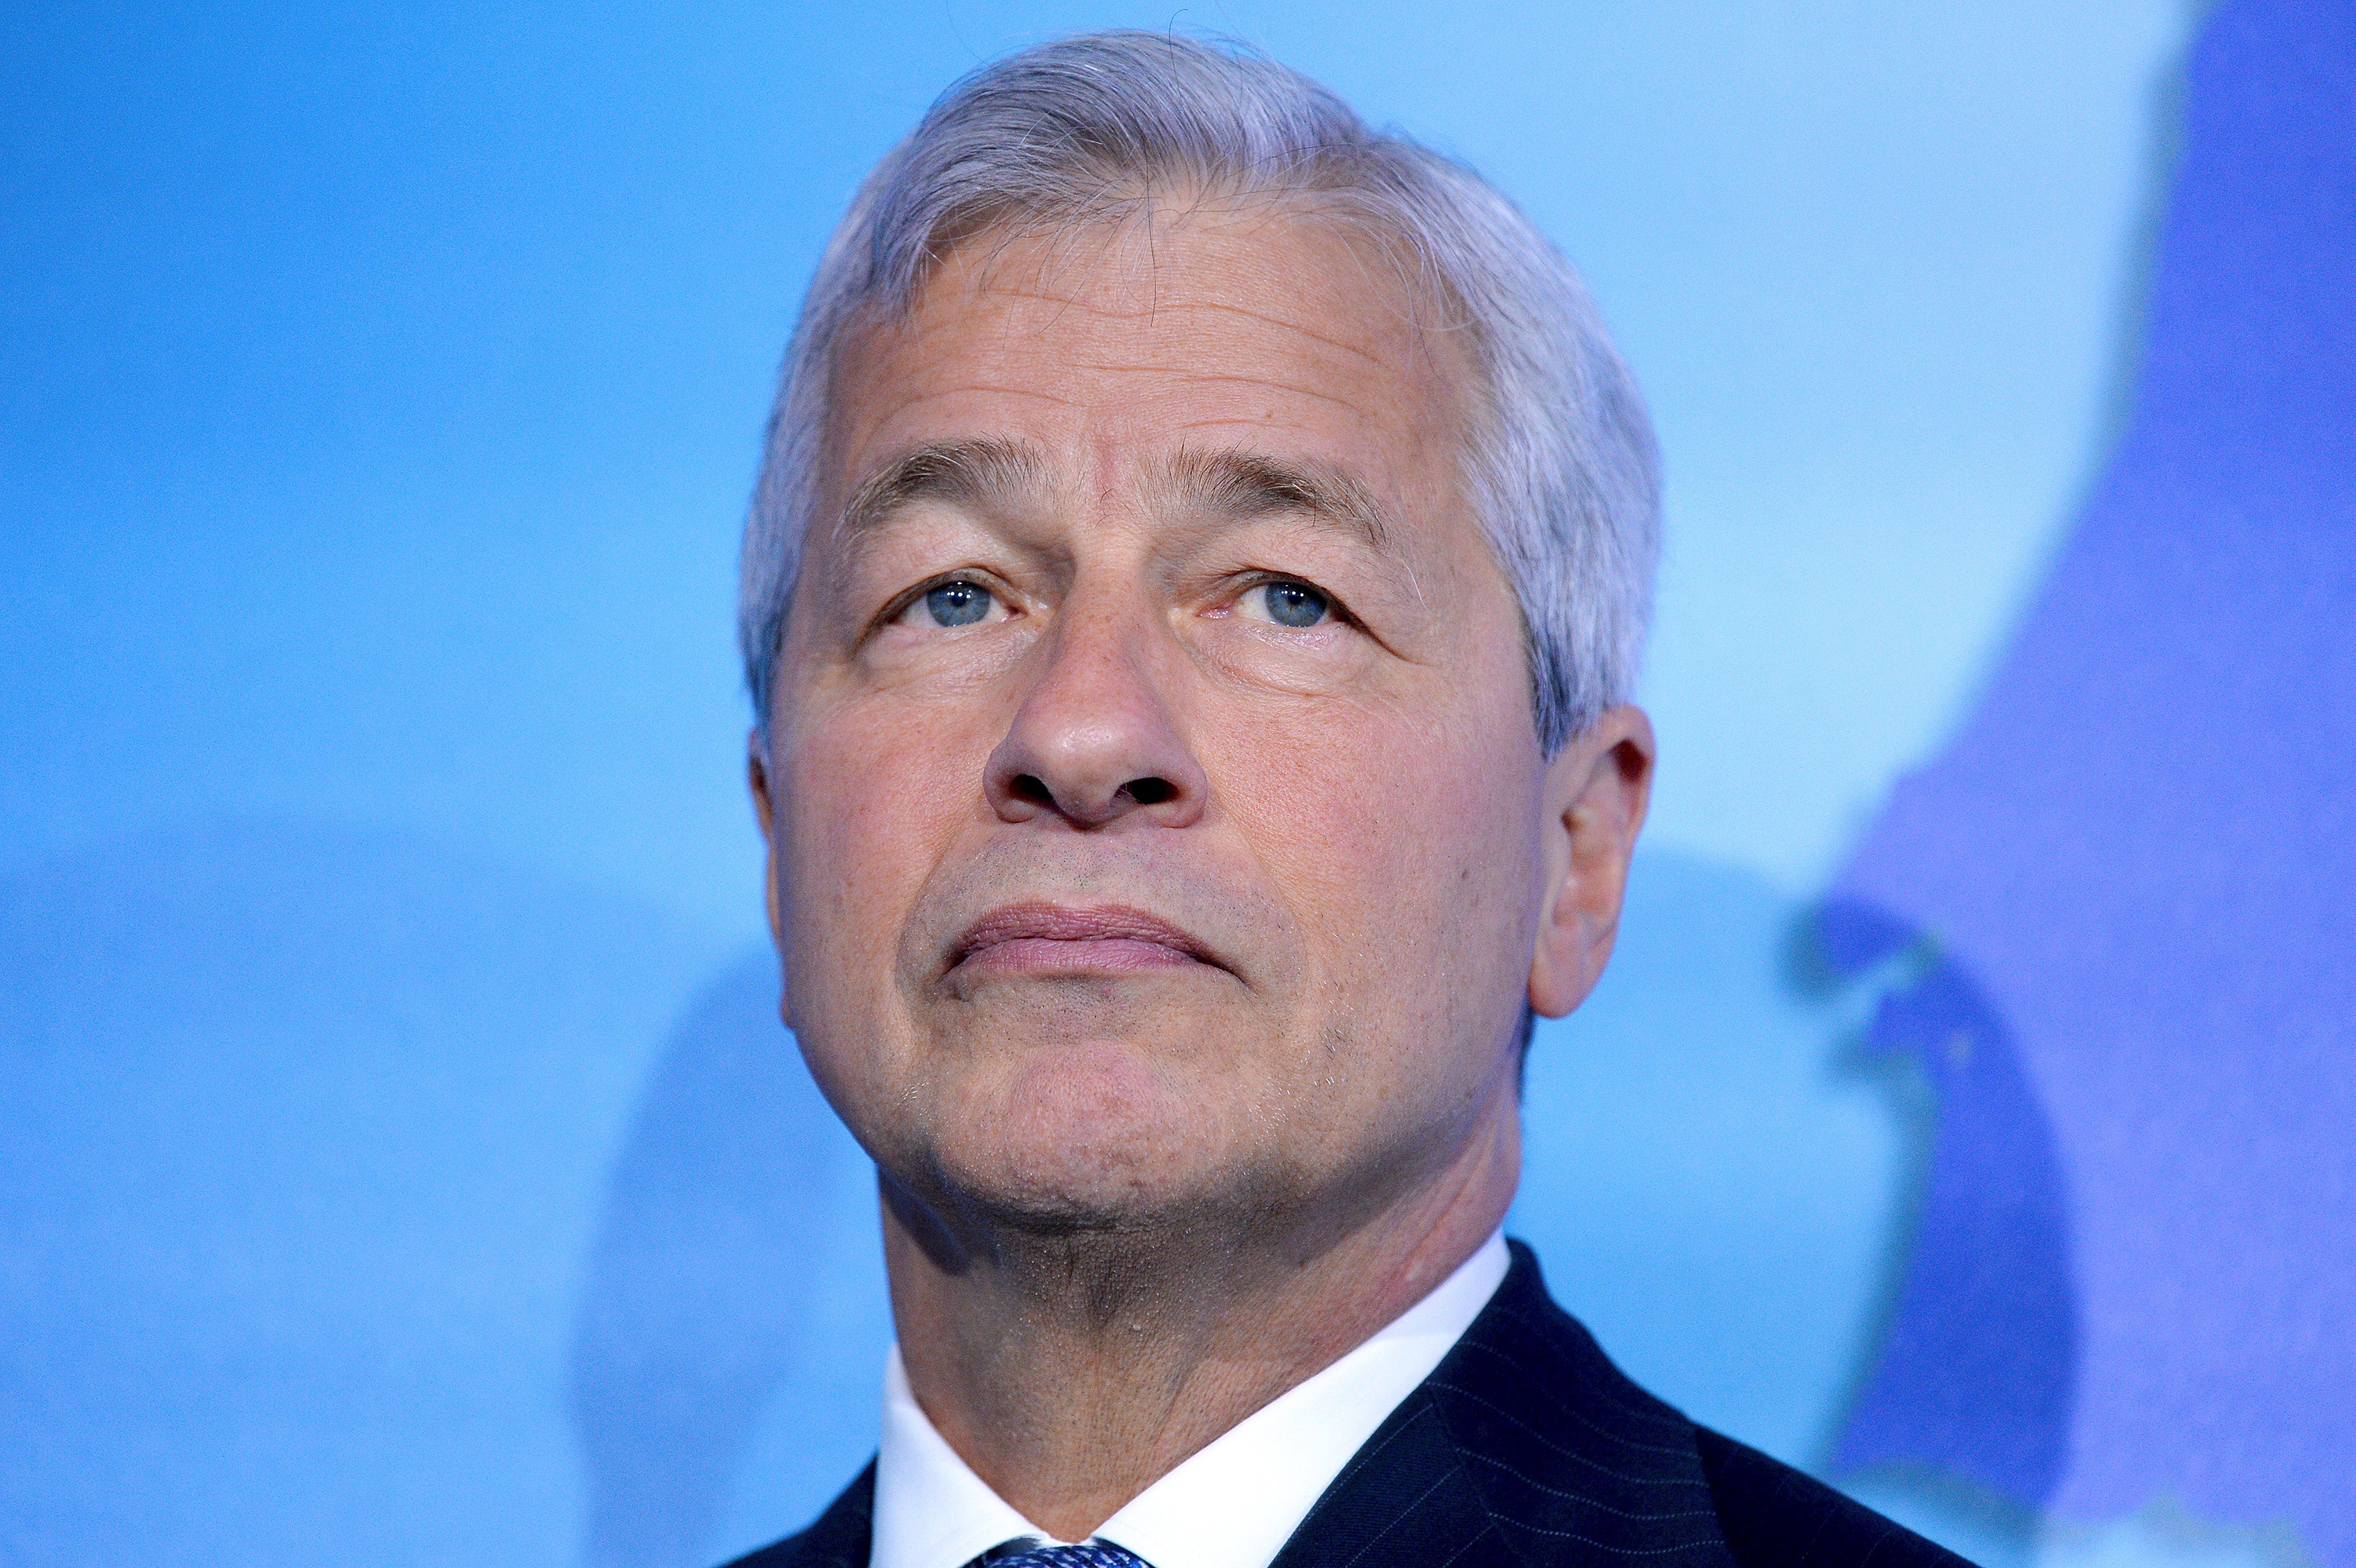 JPMorgan's profit plunges as credit costs spike on economic uncertainty